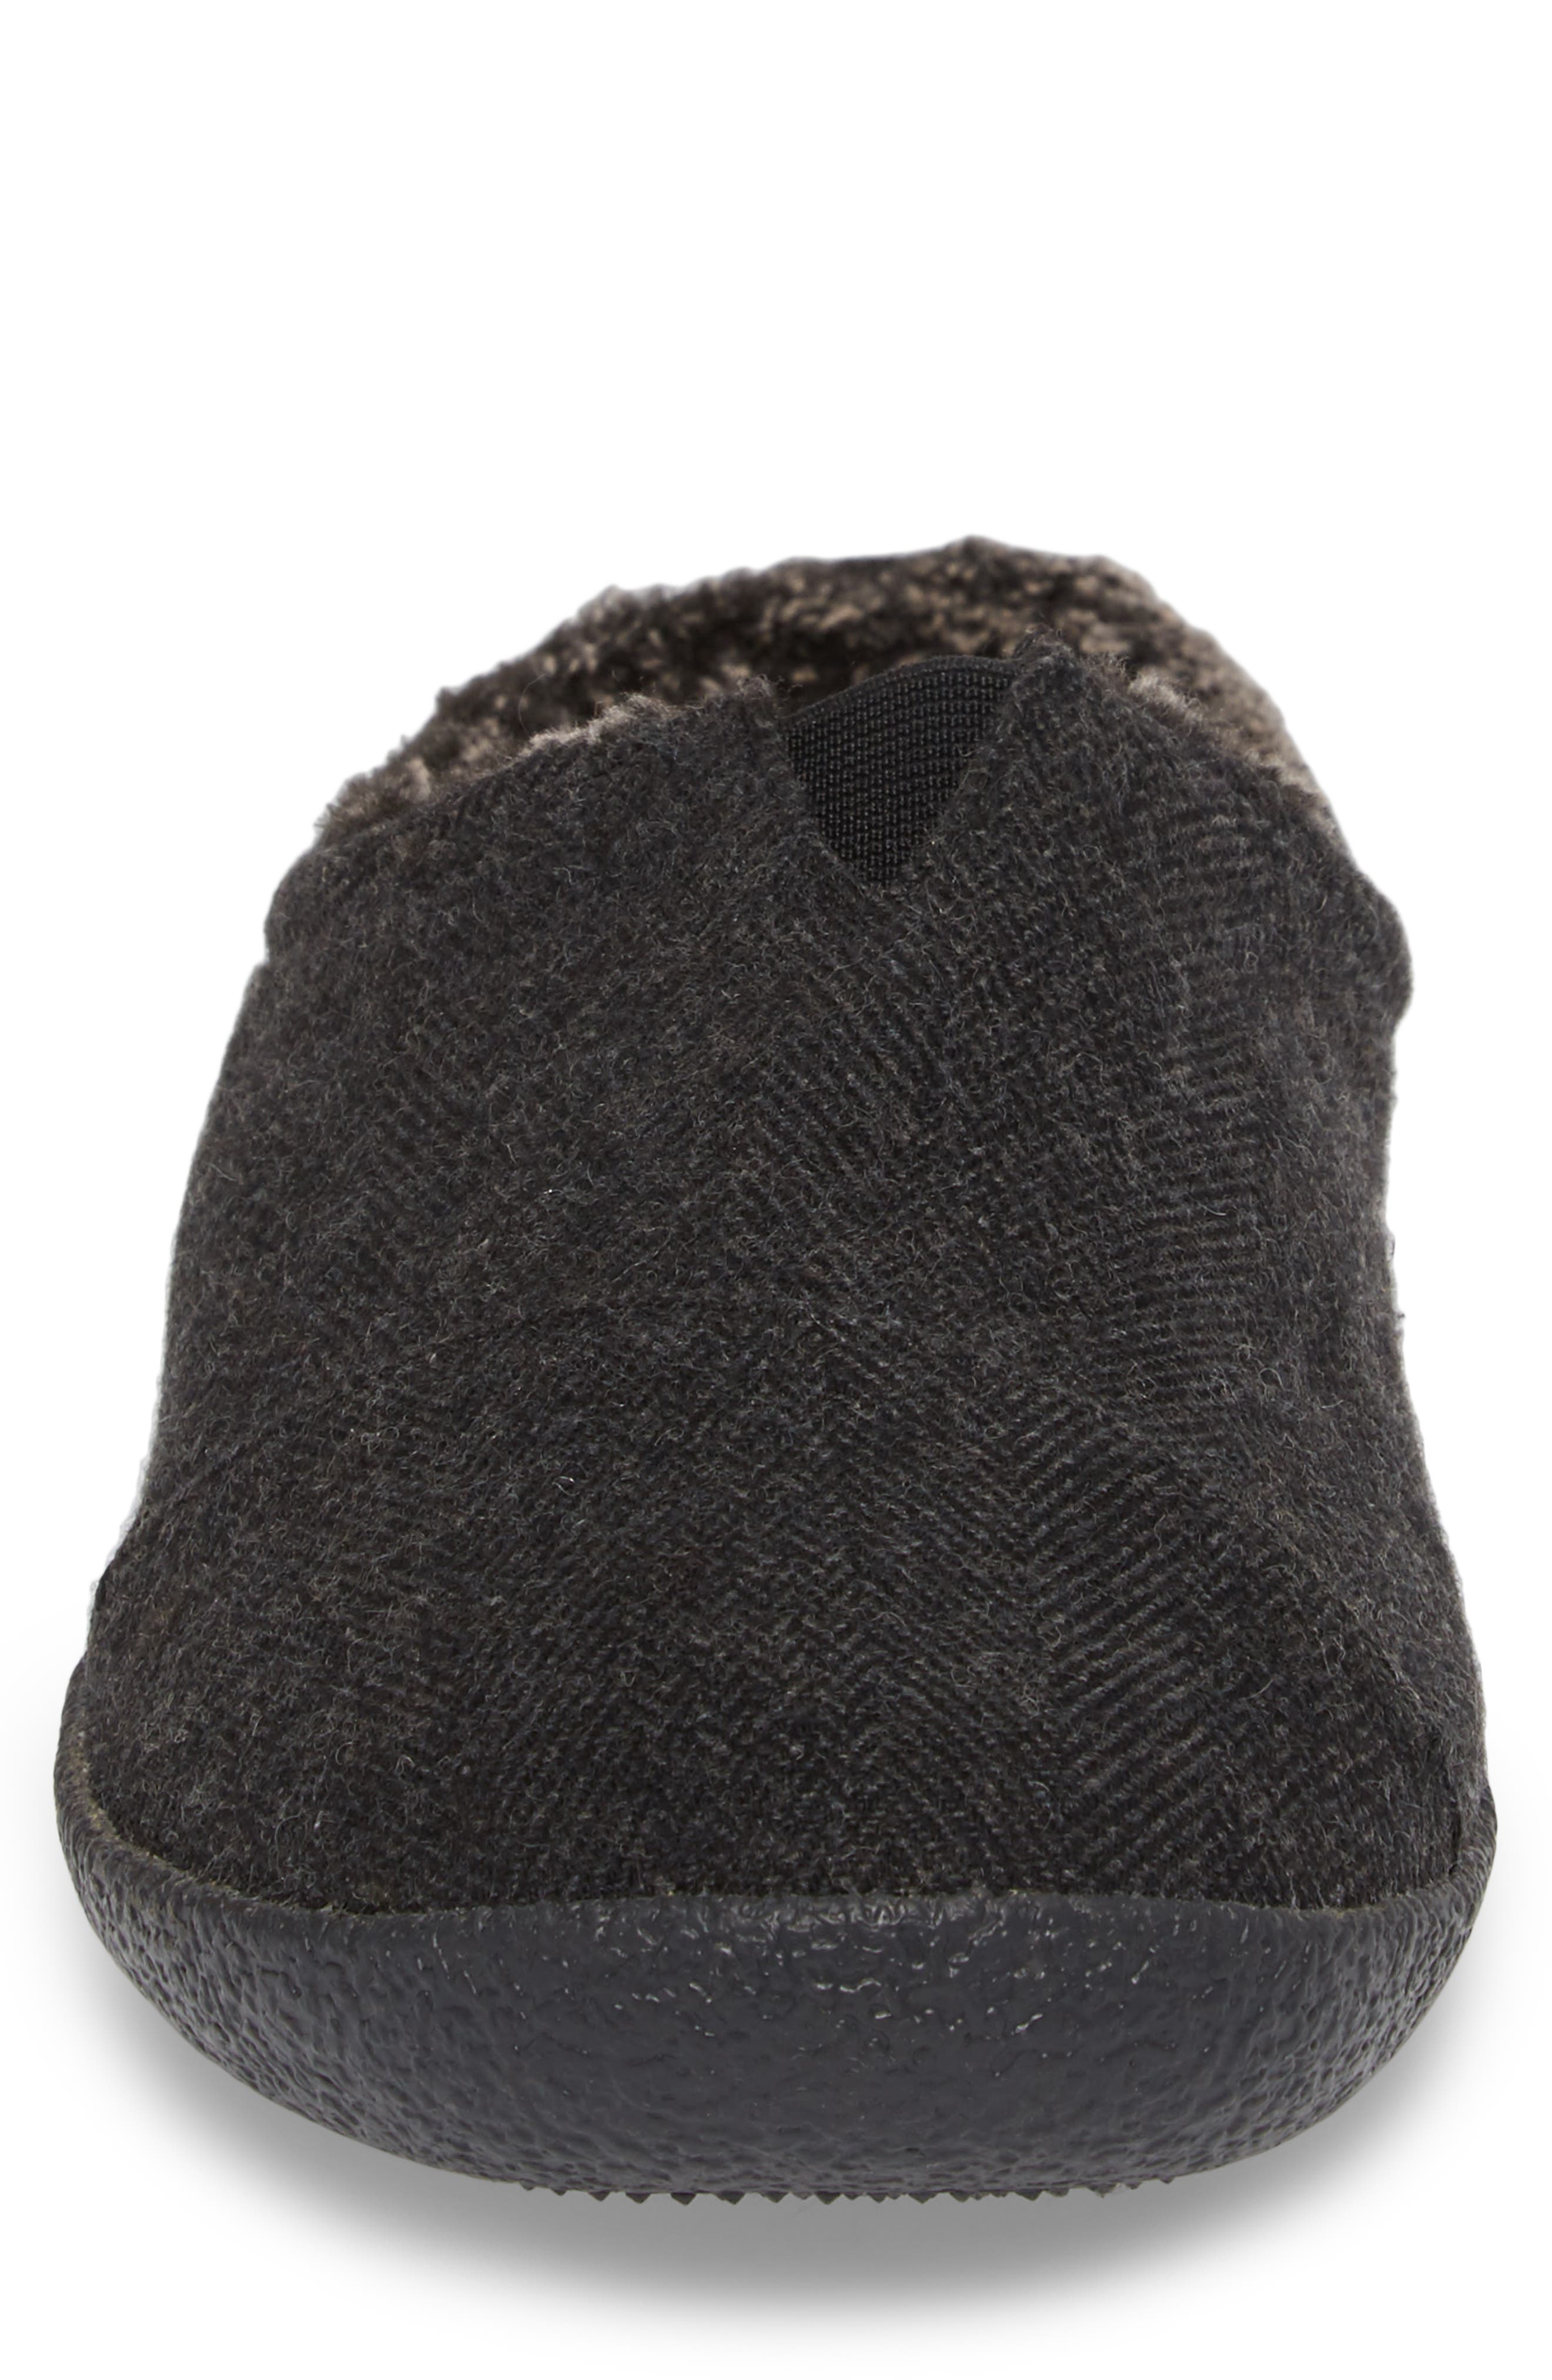 Berkeley Slipper with Faux Fur Lining,                             Alternate thumbnail 4, color,                             001